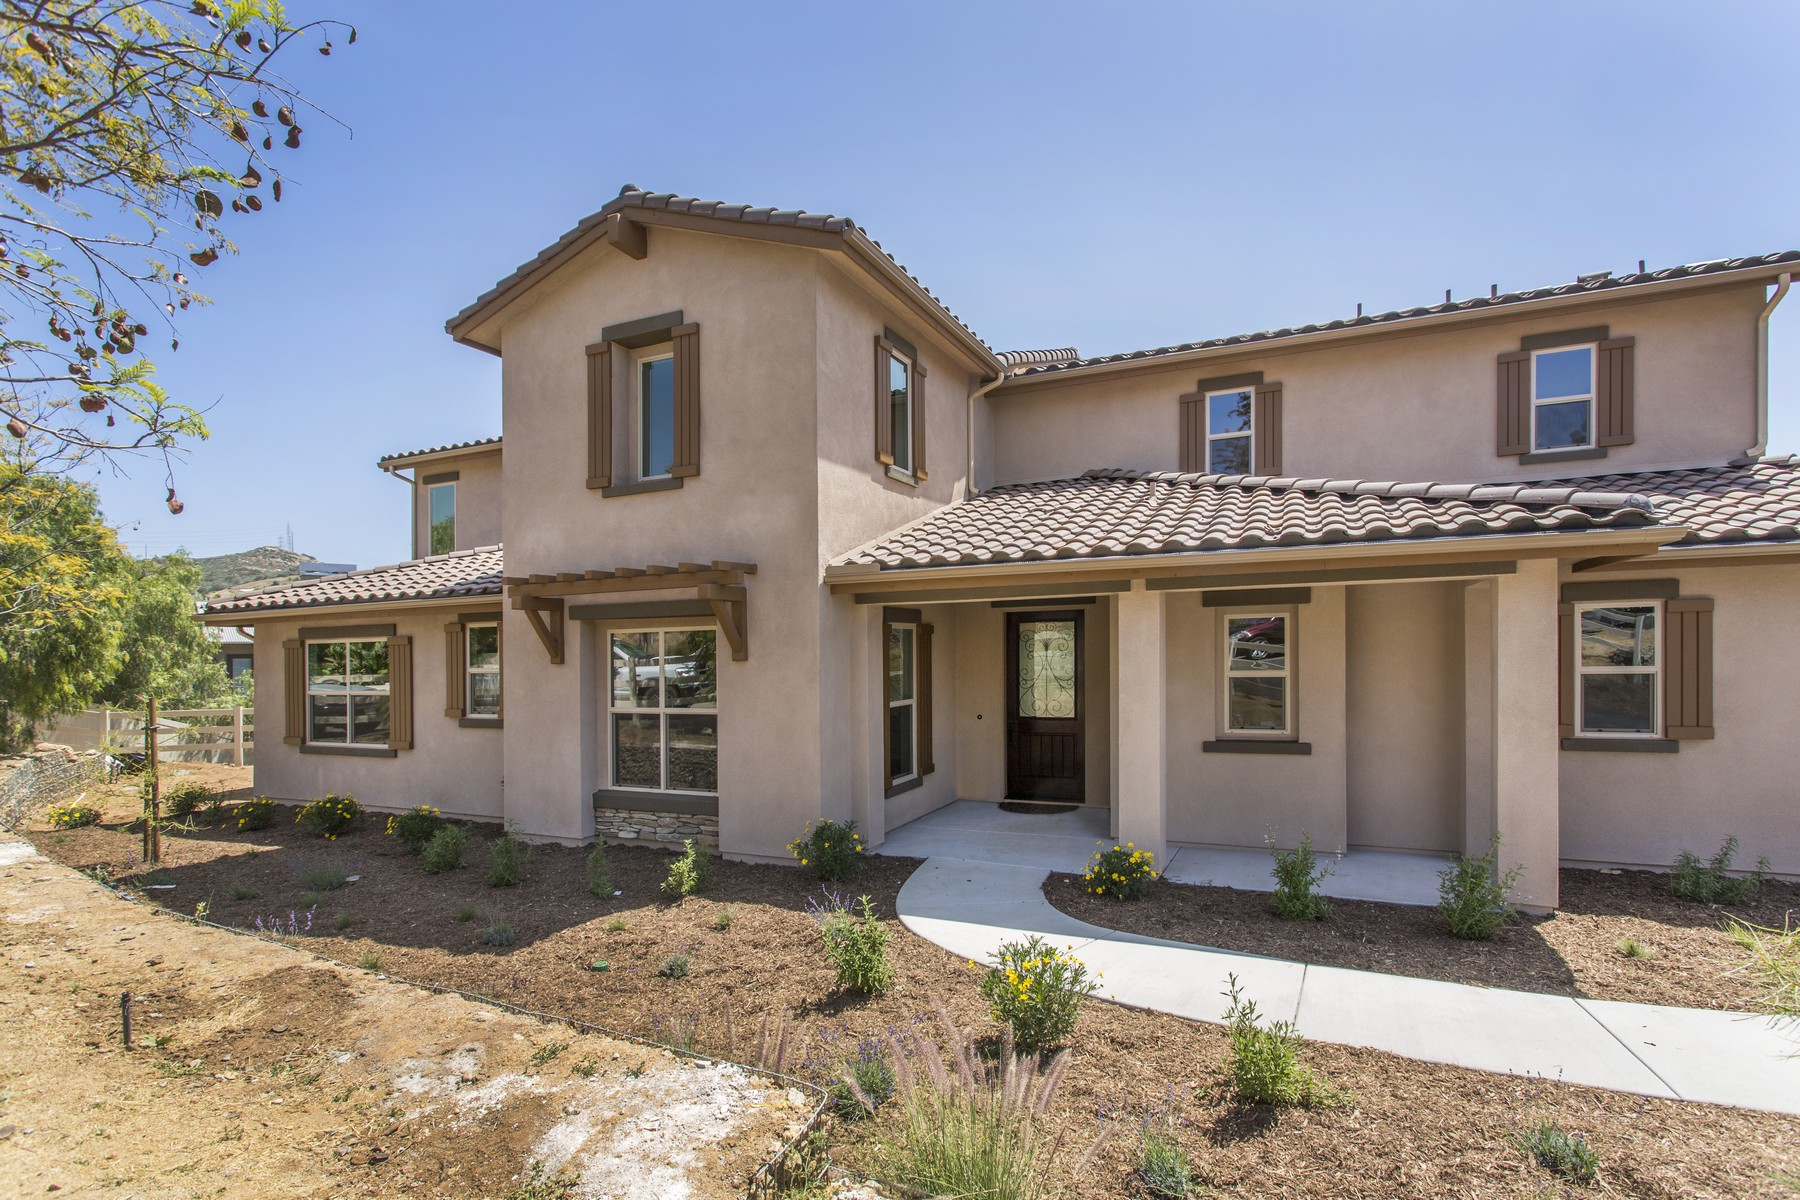 Additional photo for property listing at 2071 Ingamac Way  El Cajon, Californie 92019 États-Unis